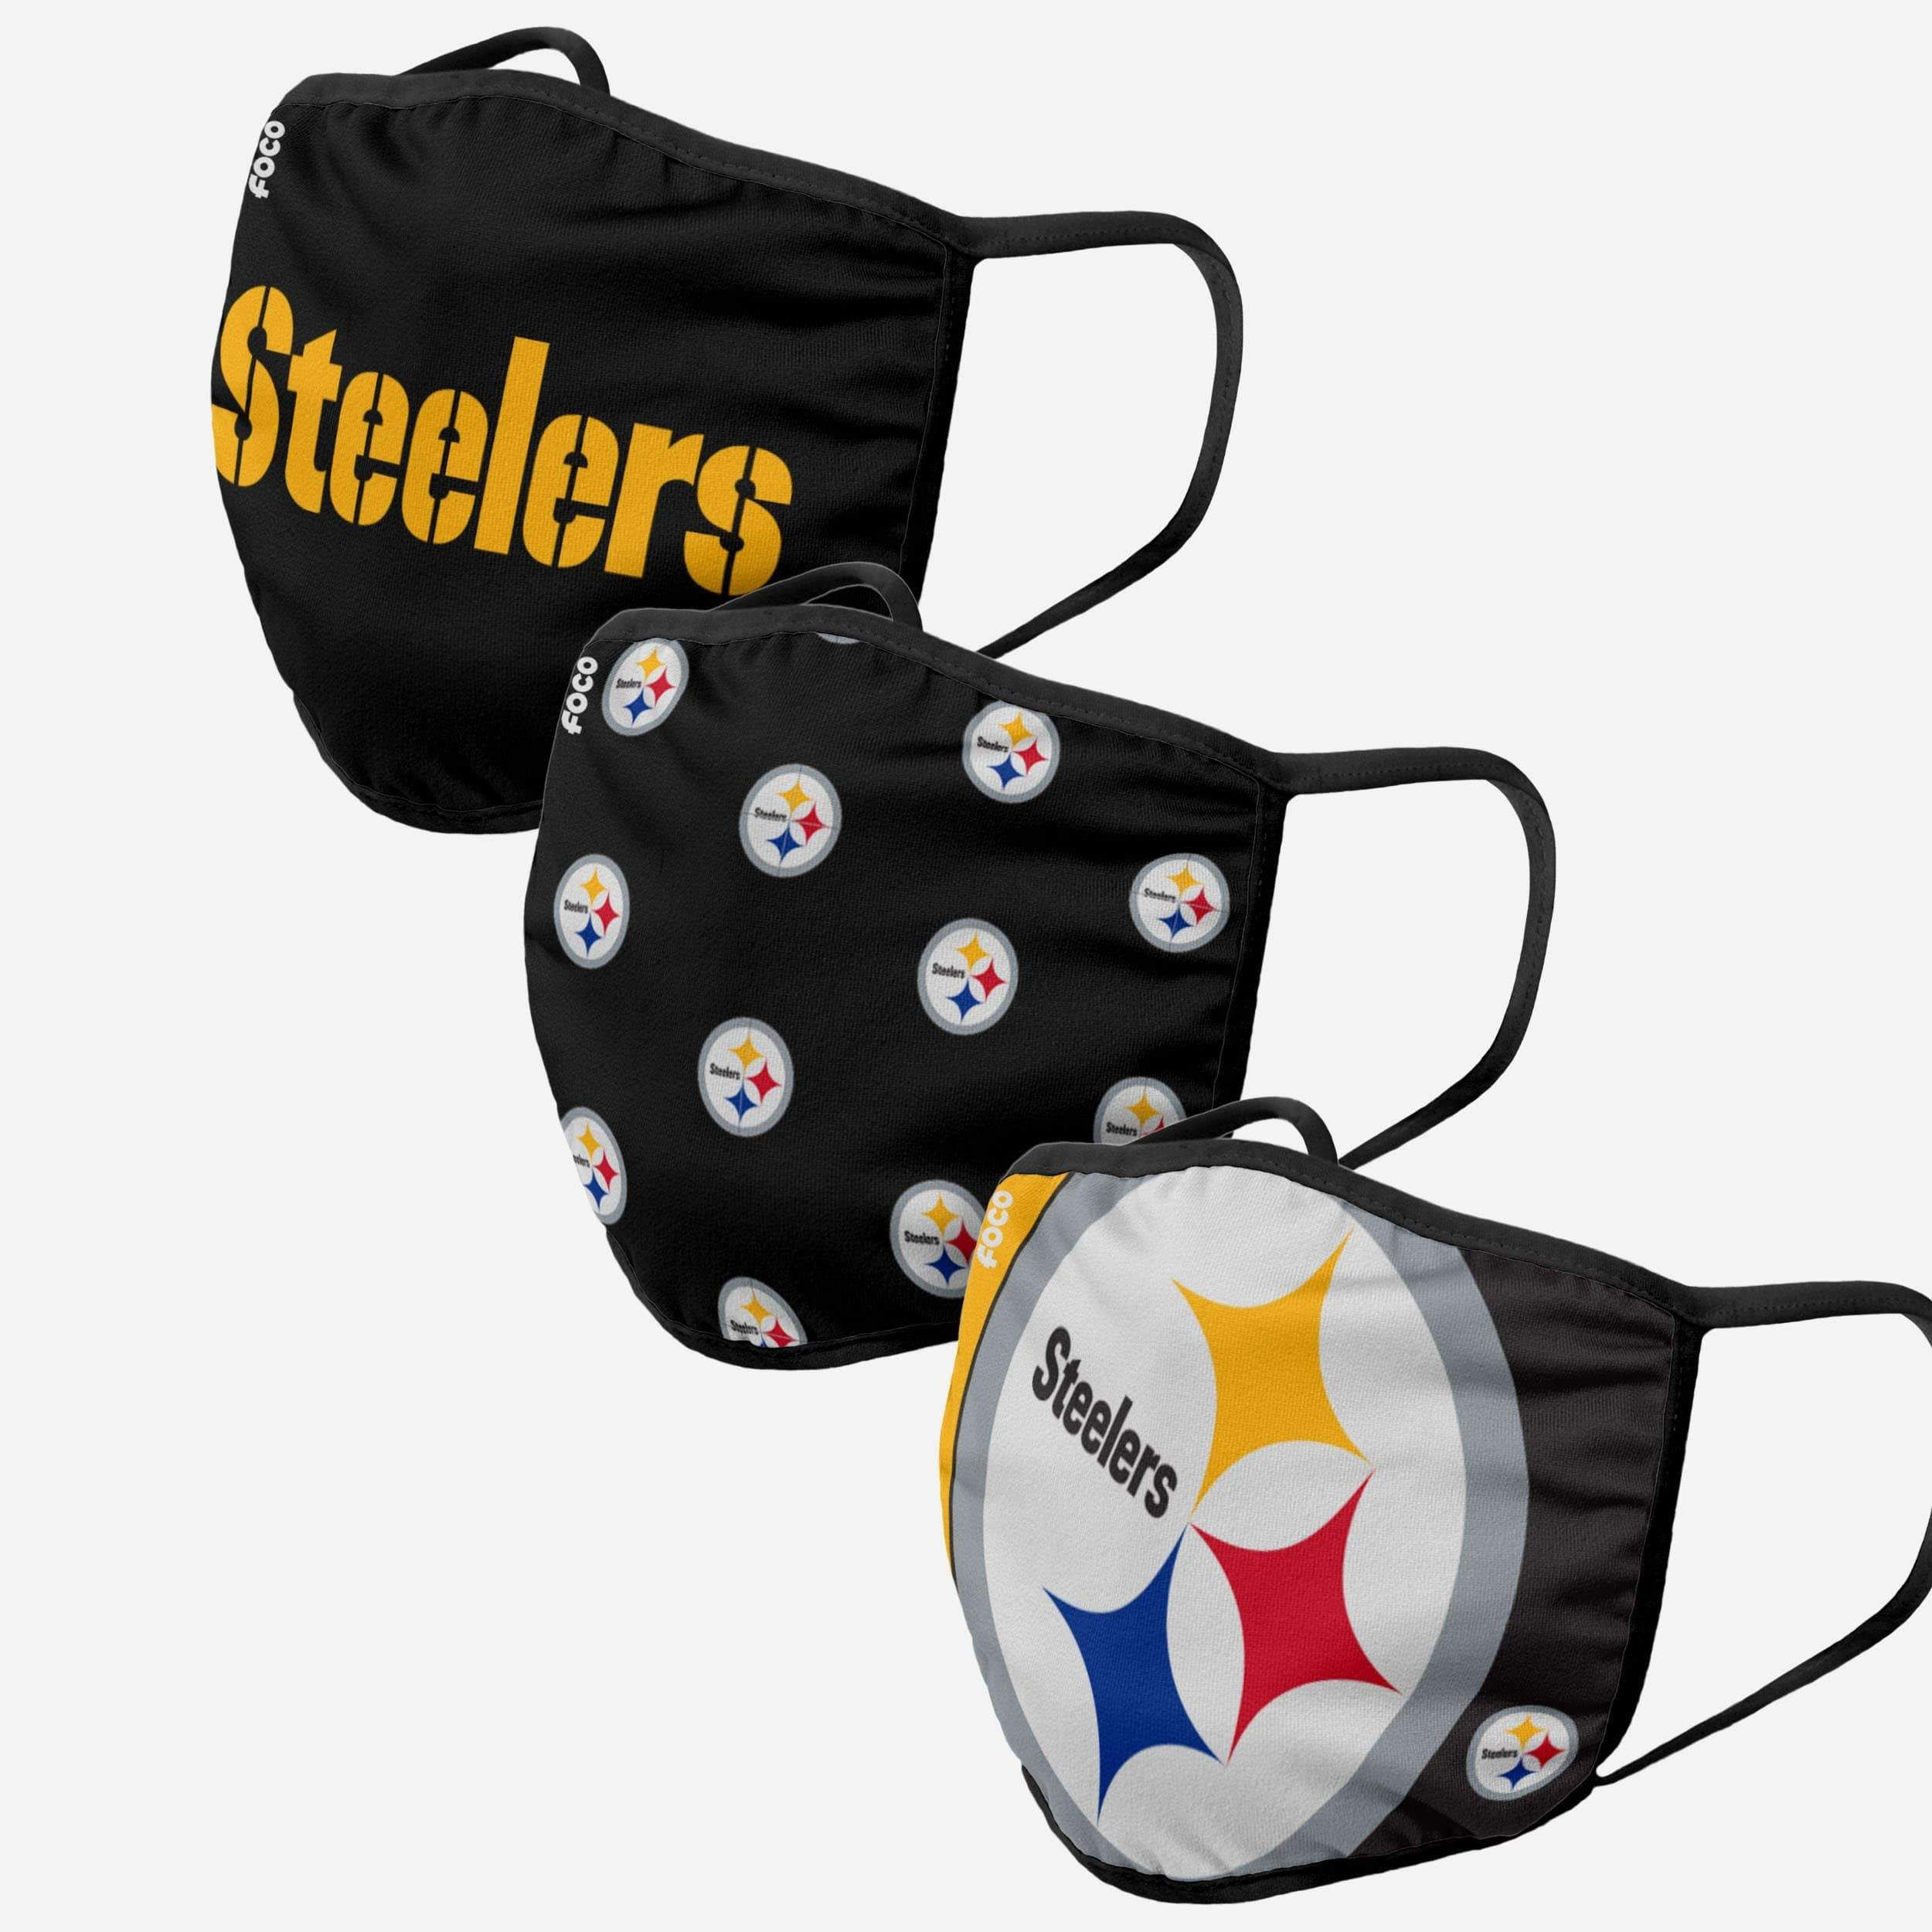 Pittsburgh Steelers 3 Pack Face Cover In 2020 Steelers Pittsburgh Steelers Steelers Gifts